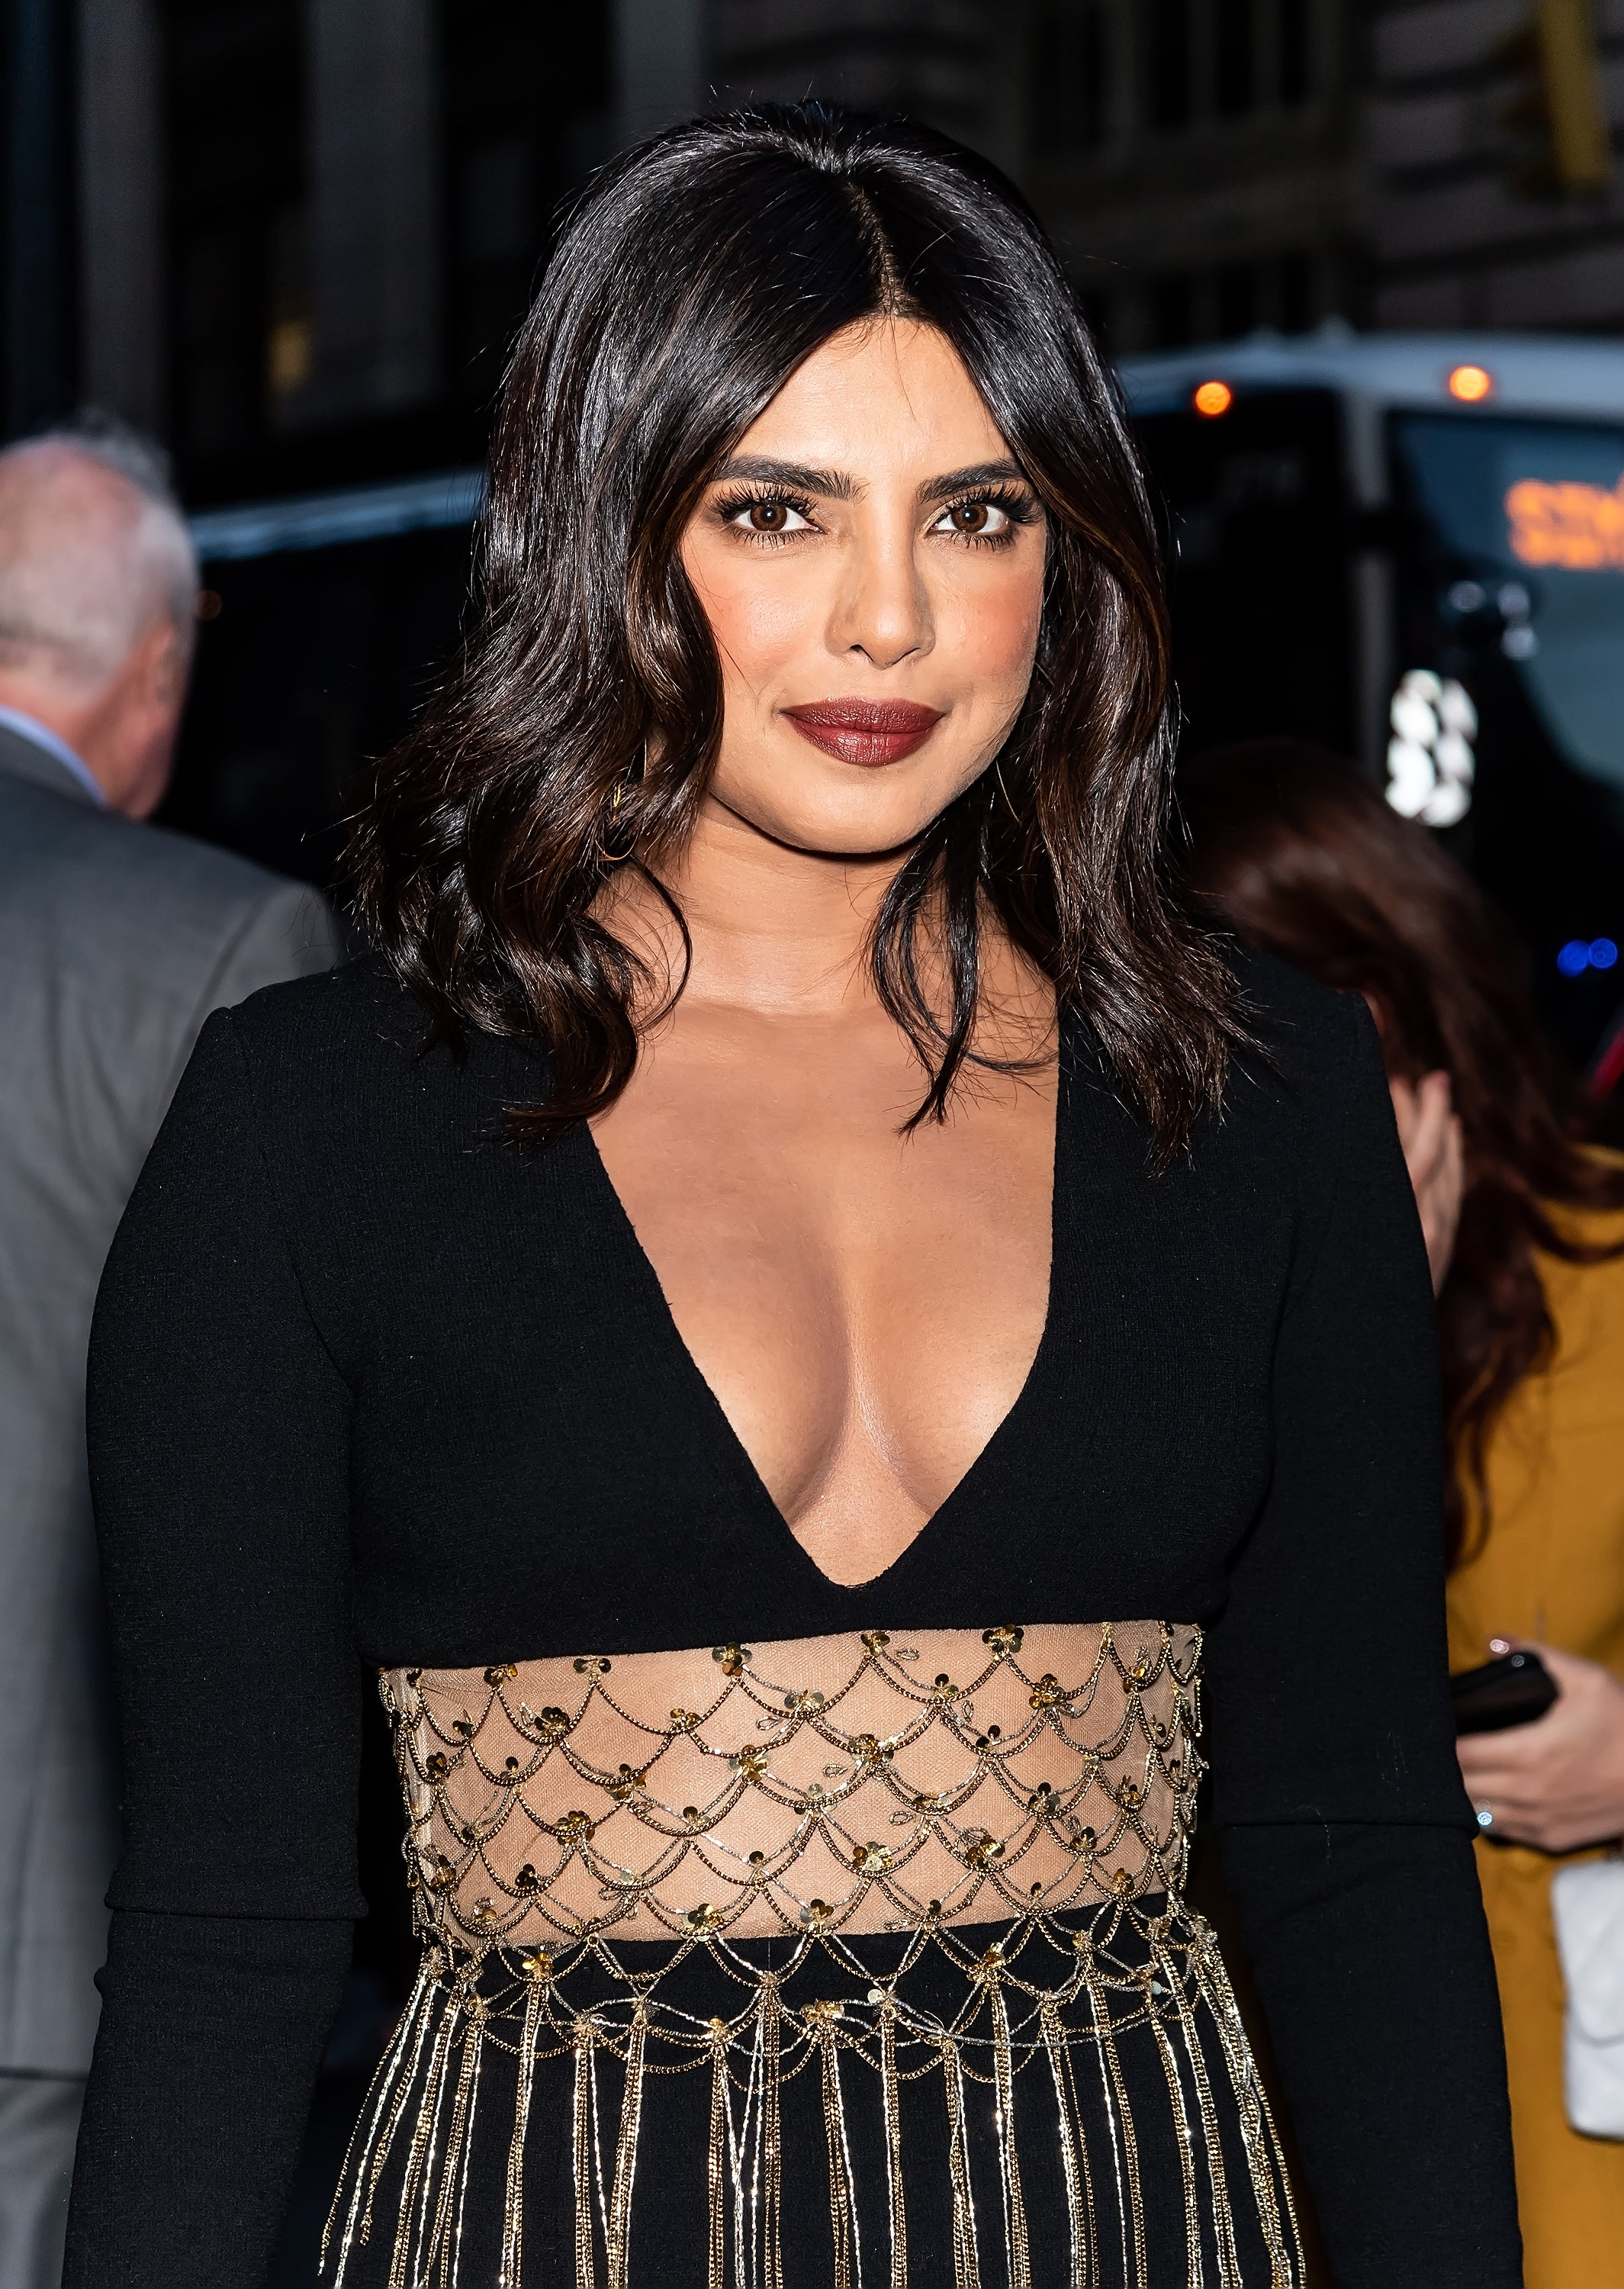 Priyanka Chopra Gets A Dark Brunette Bob For Fall